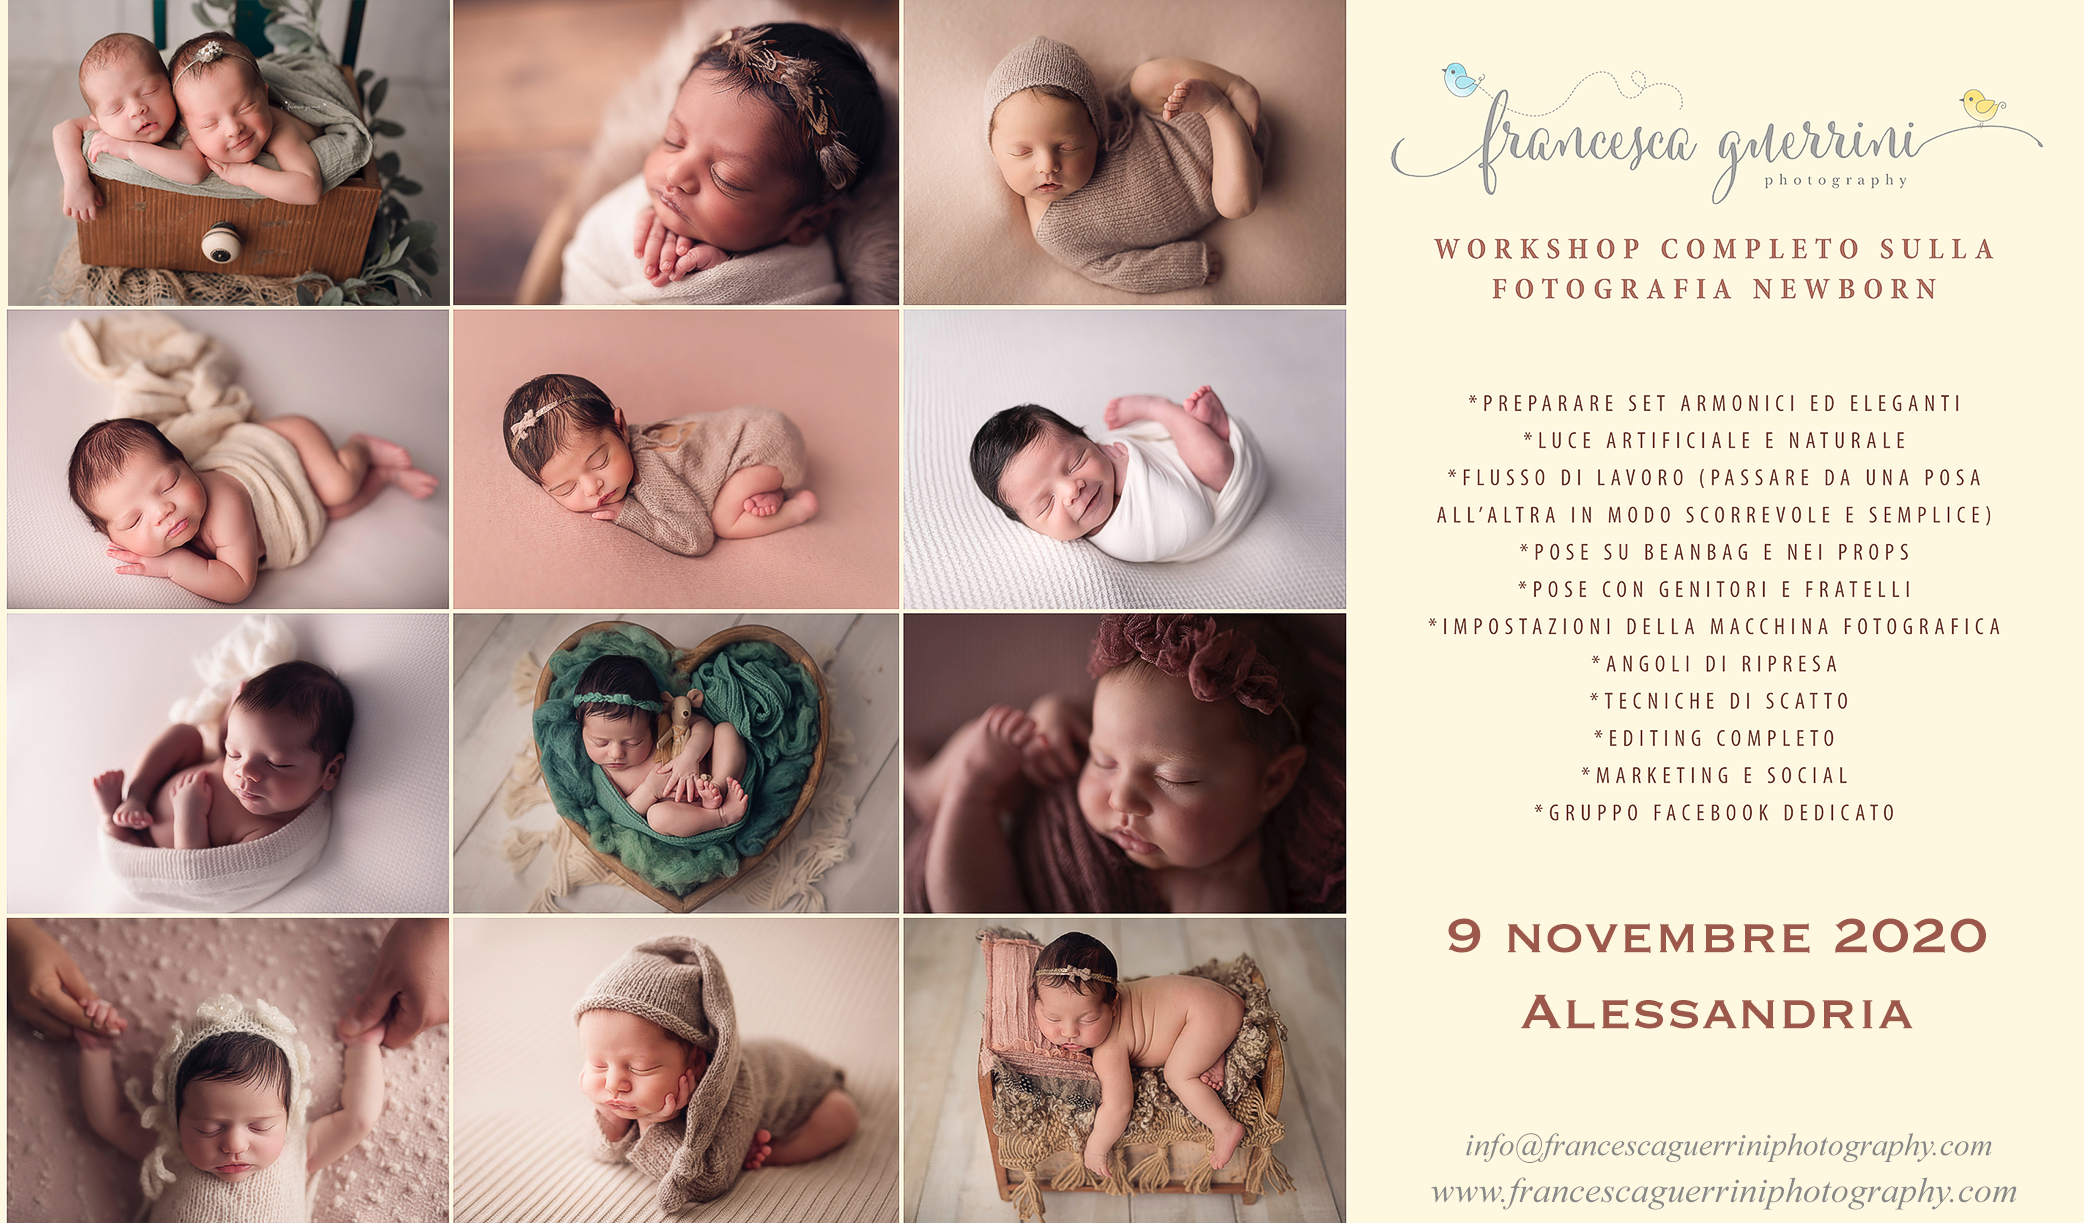 francesca-guerrini-workshop-alessandria-newborn-photography-foto-neonati-firenze